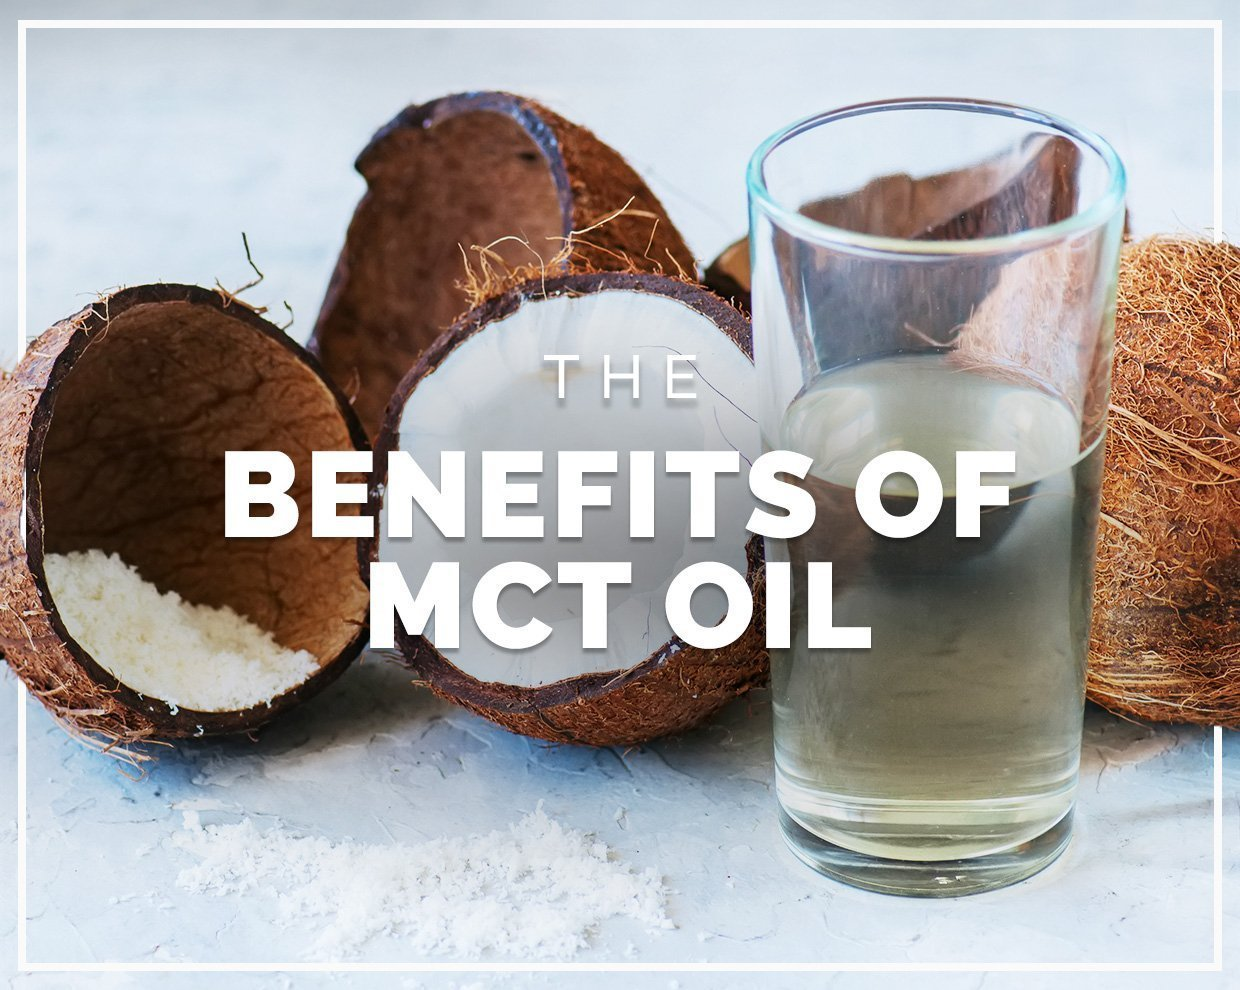 The benefits of MCT oil